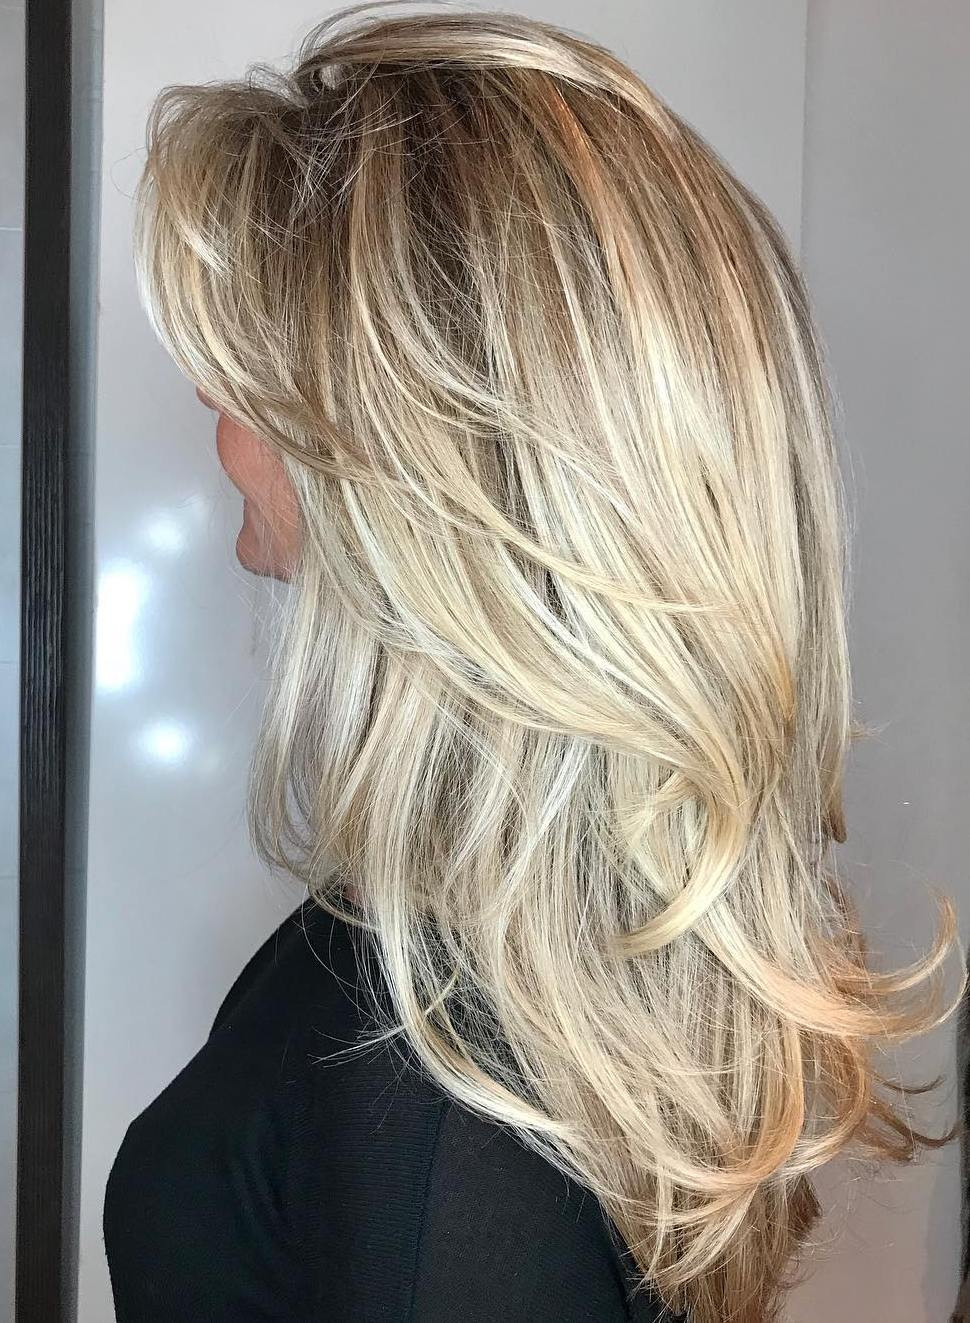 Best ideas about Cute Hairstyles For Layered Hair . Save or Pin 50 Cute Long Layered Haircuts with Bangs 2019 Now.